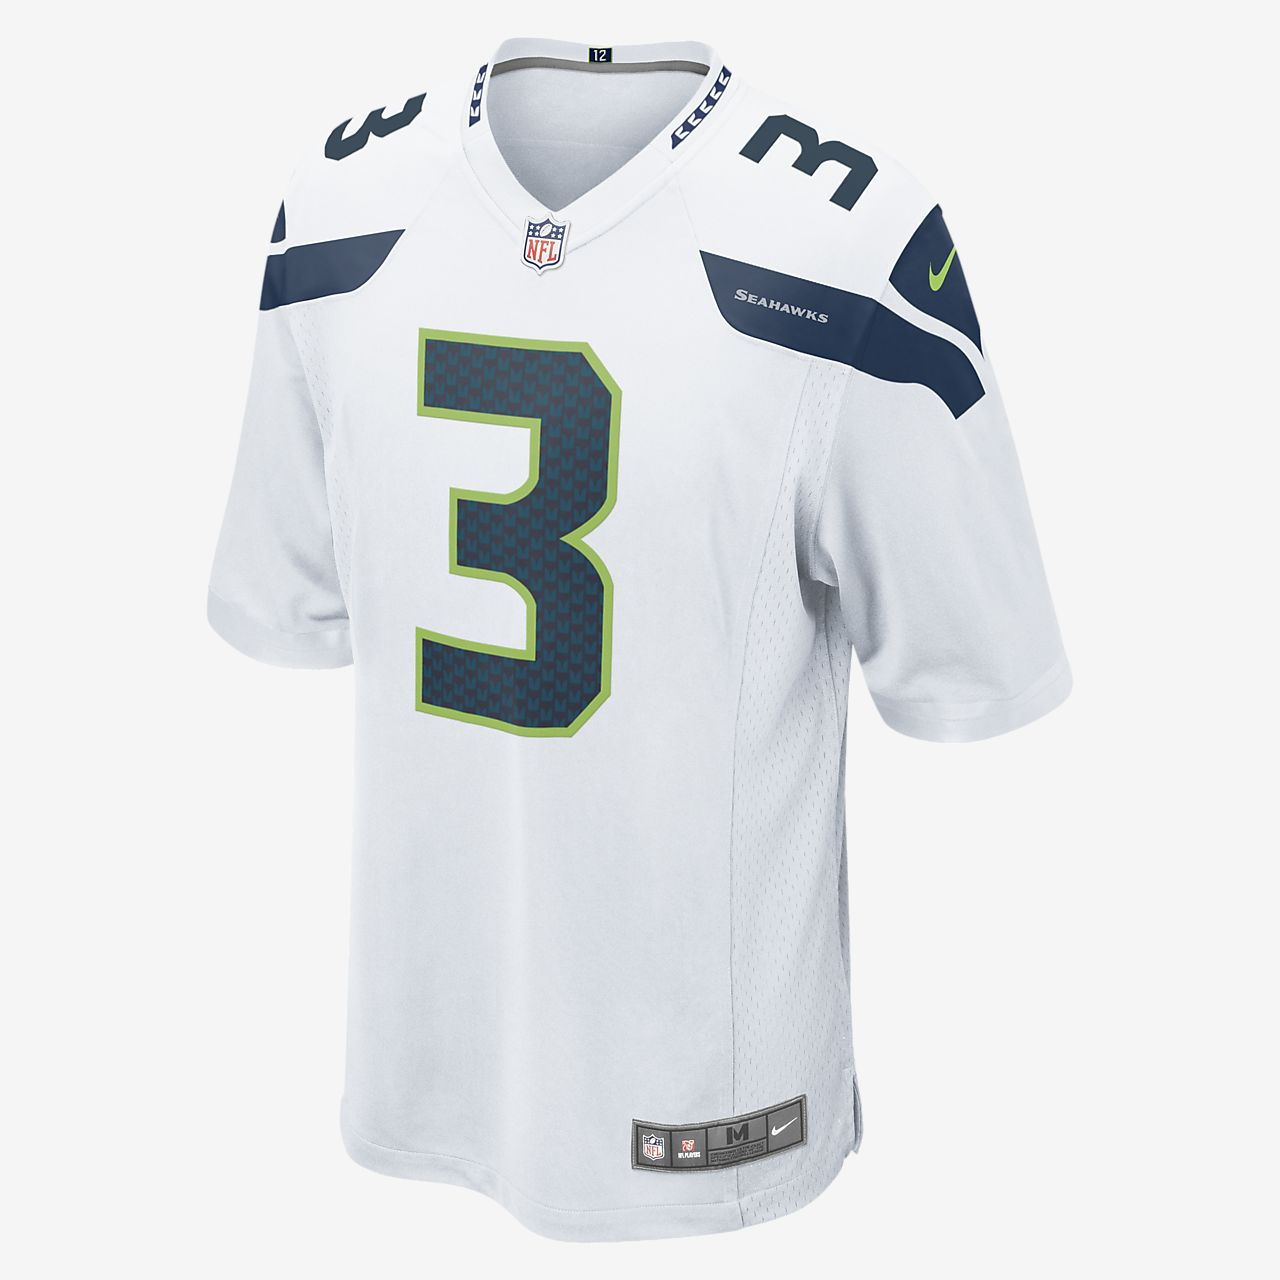 com Nfl russell Wilson Za Seattle Seahawks Jersey Game Men's Nike Football American adddfaeceebaca|Saints On Sunday Night Soccer?